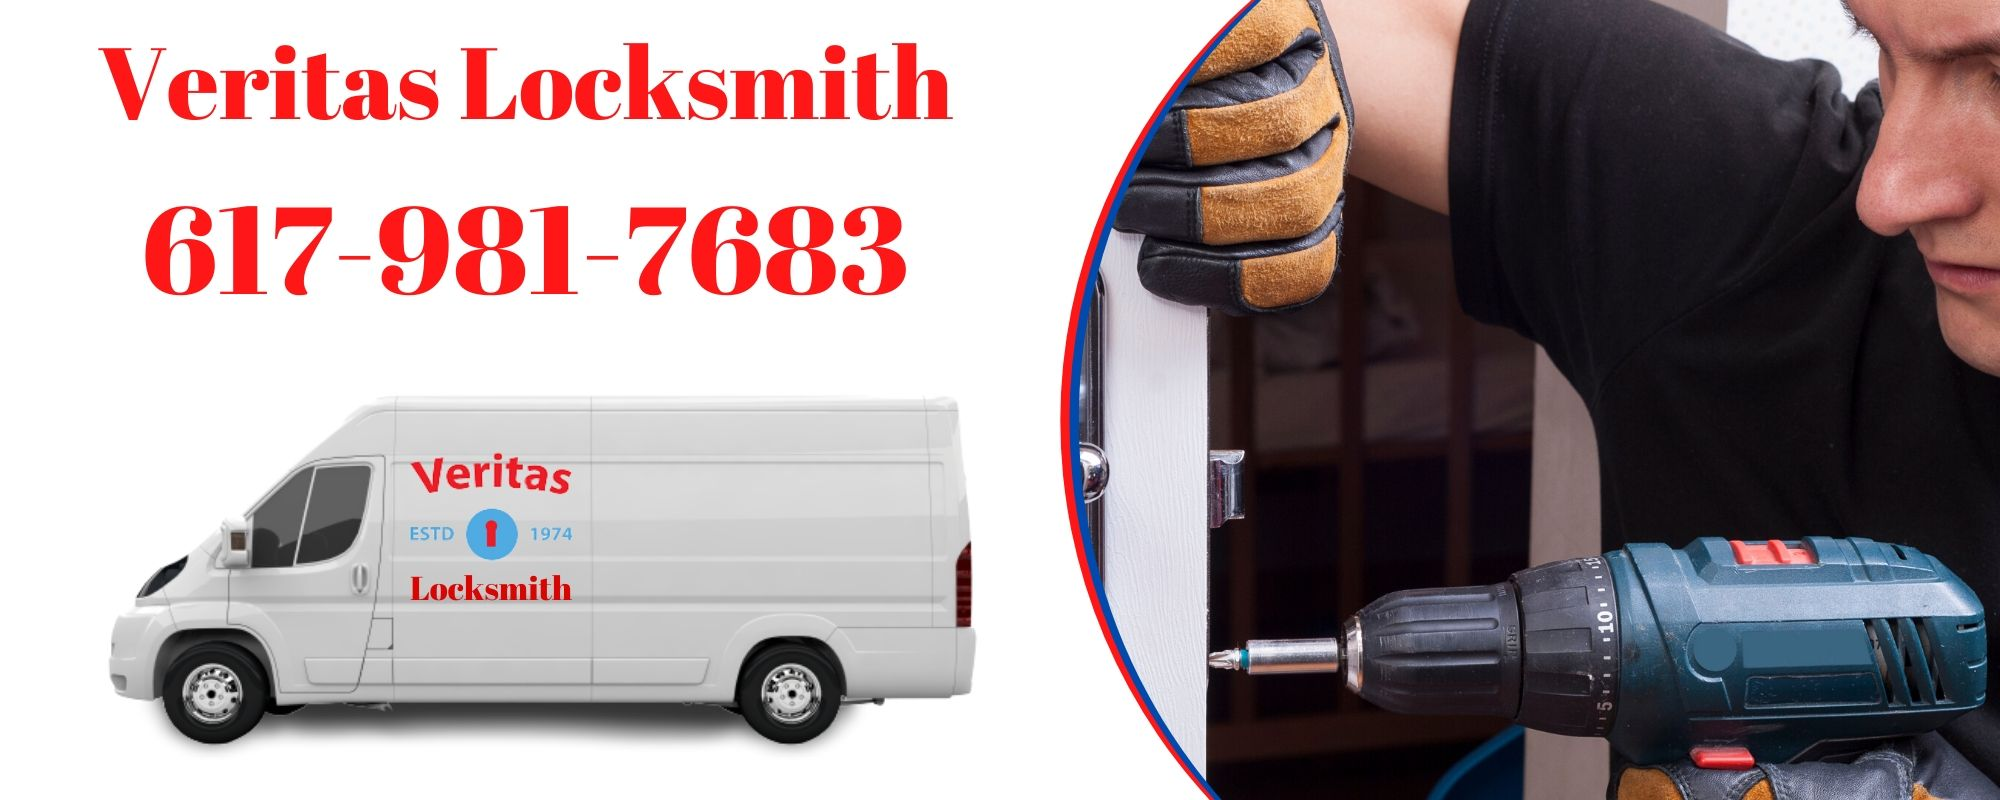 Veritas Locksmith Brookline, MA - Full locksmith services